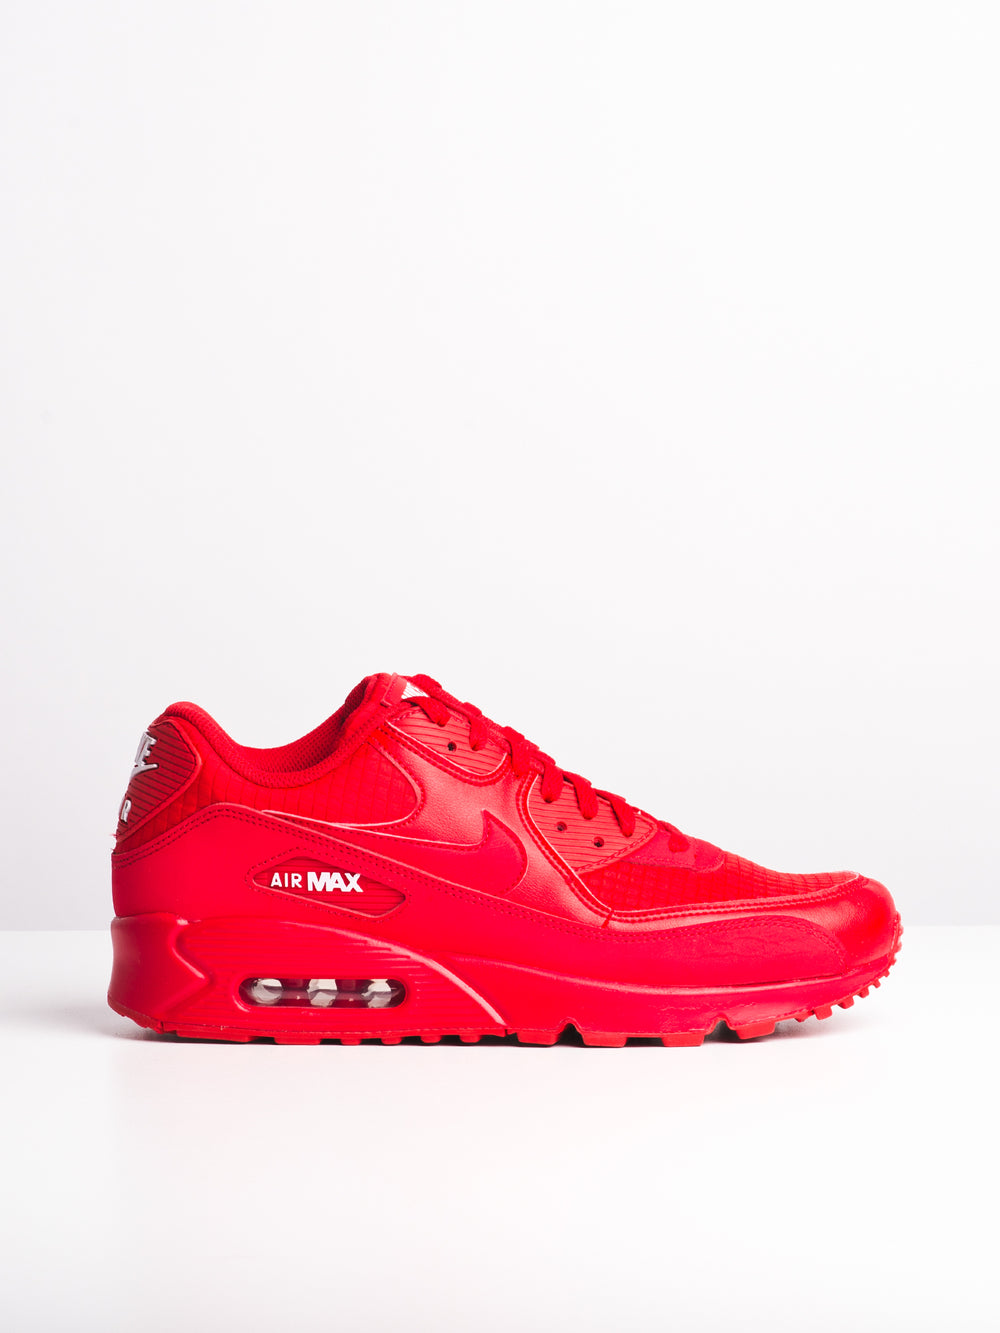 MENS AIR MAX '90 ESS - UNI RED - CLEARANCE